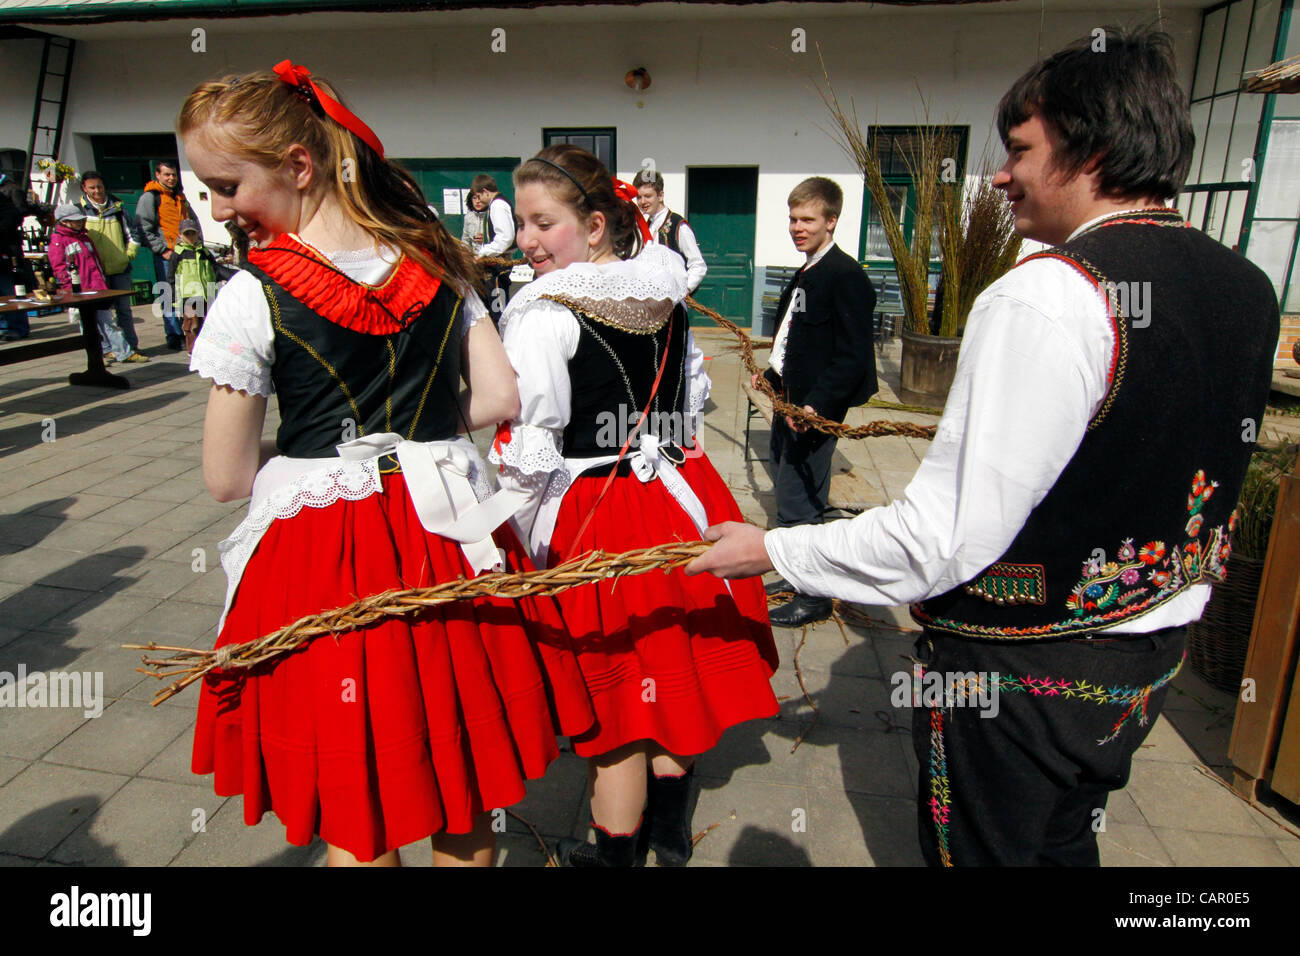 """Boys in folk customs carry a giant """"pomlazka"""" (plated willow stems) to whip girls during traditional celebration Stock Photo"""